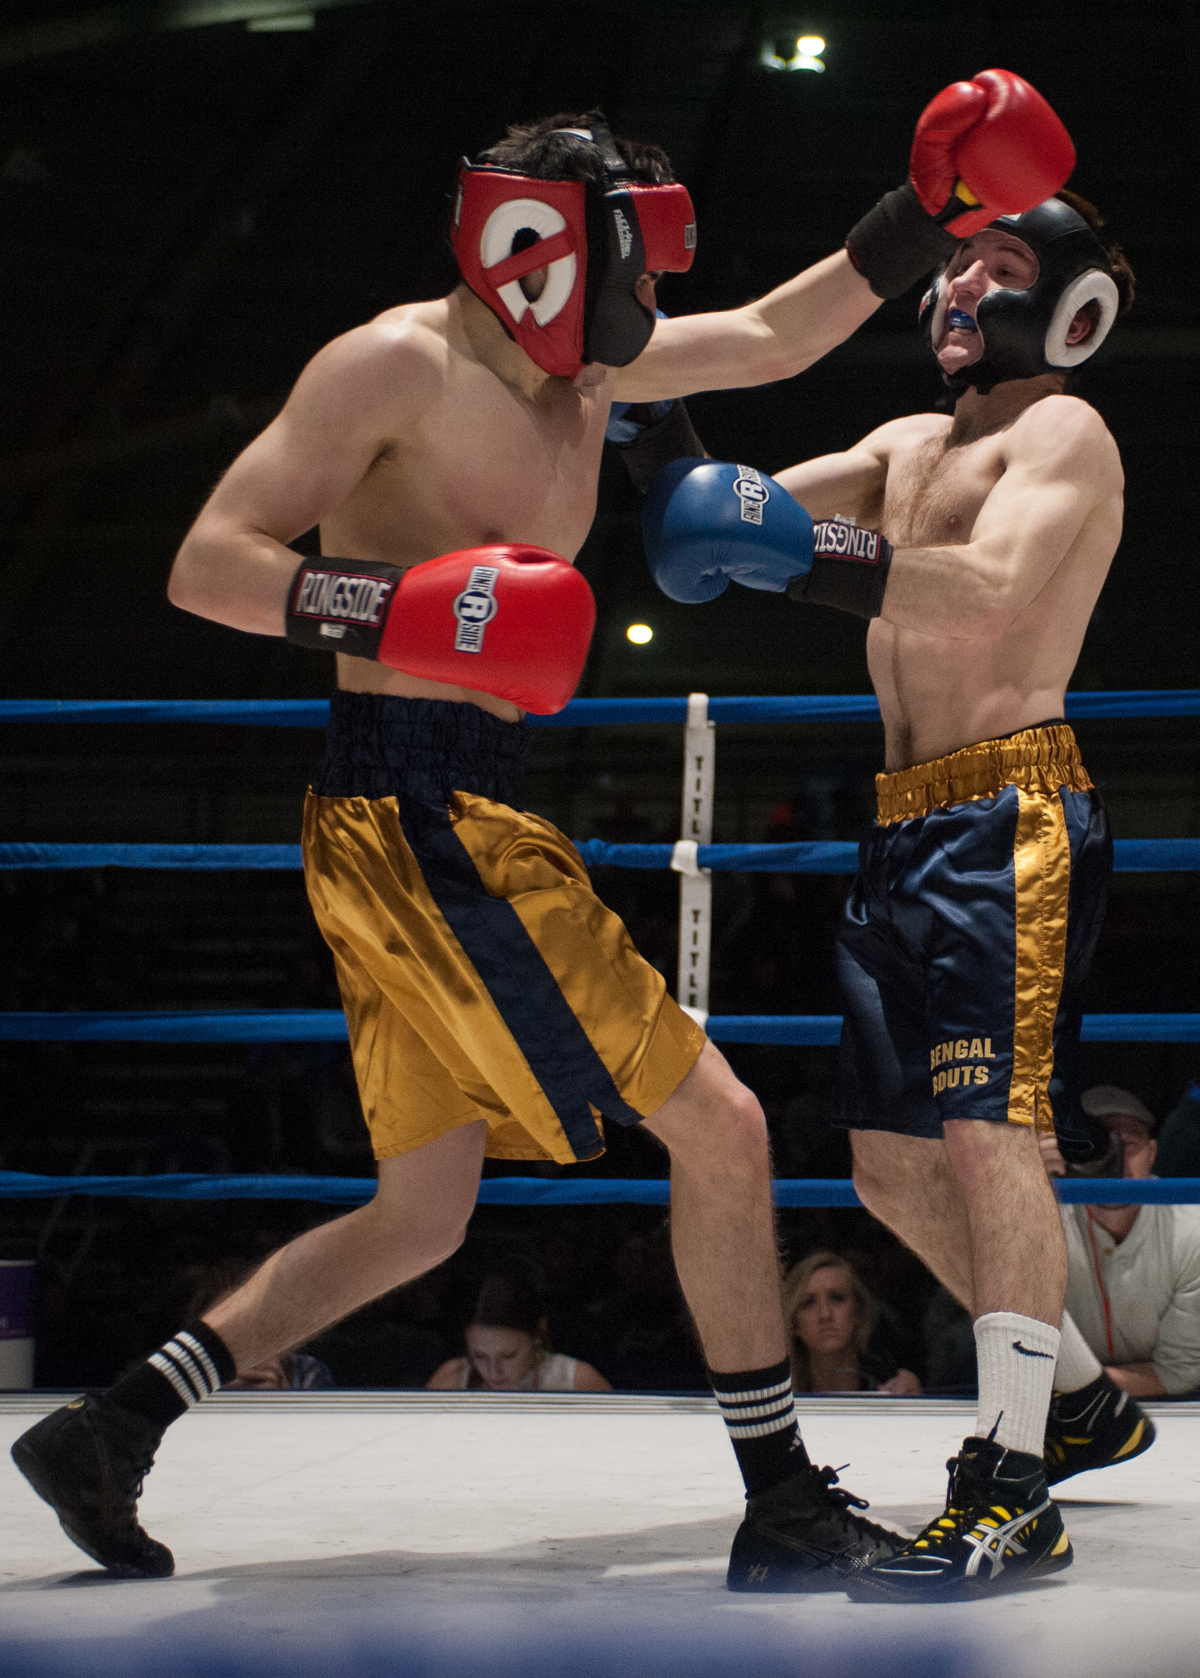 Senior Chris Tricario, right, fights during the 2014 Bengal Bouts at Joyce Fieldhouse. Tricario was unable to participate in this year's competition due to an injury but remained involved in Bengal Bouts.